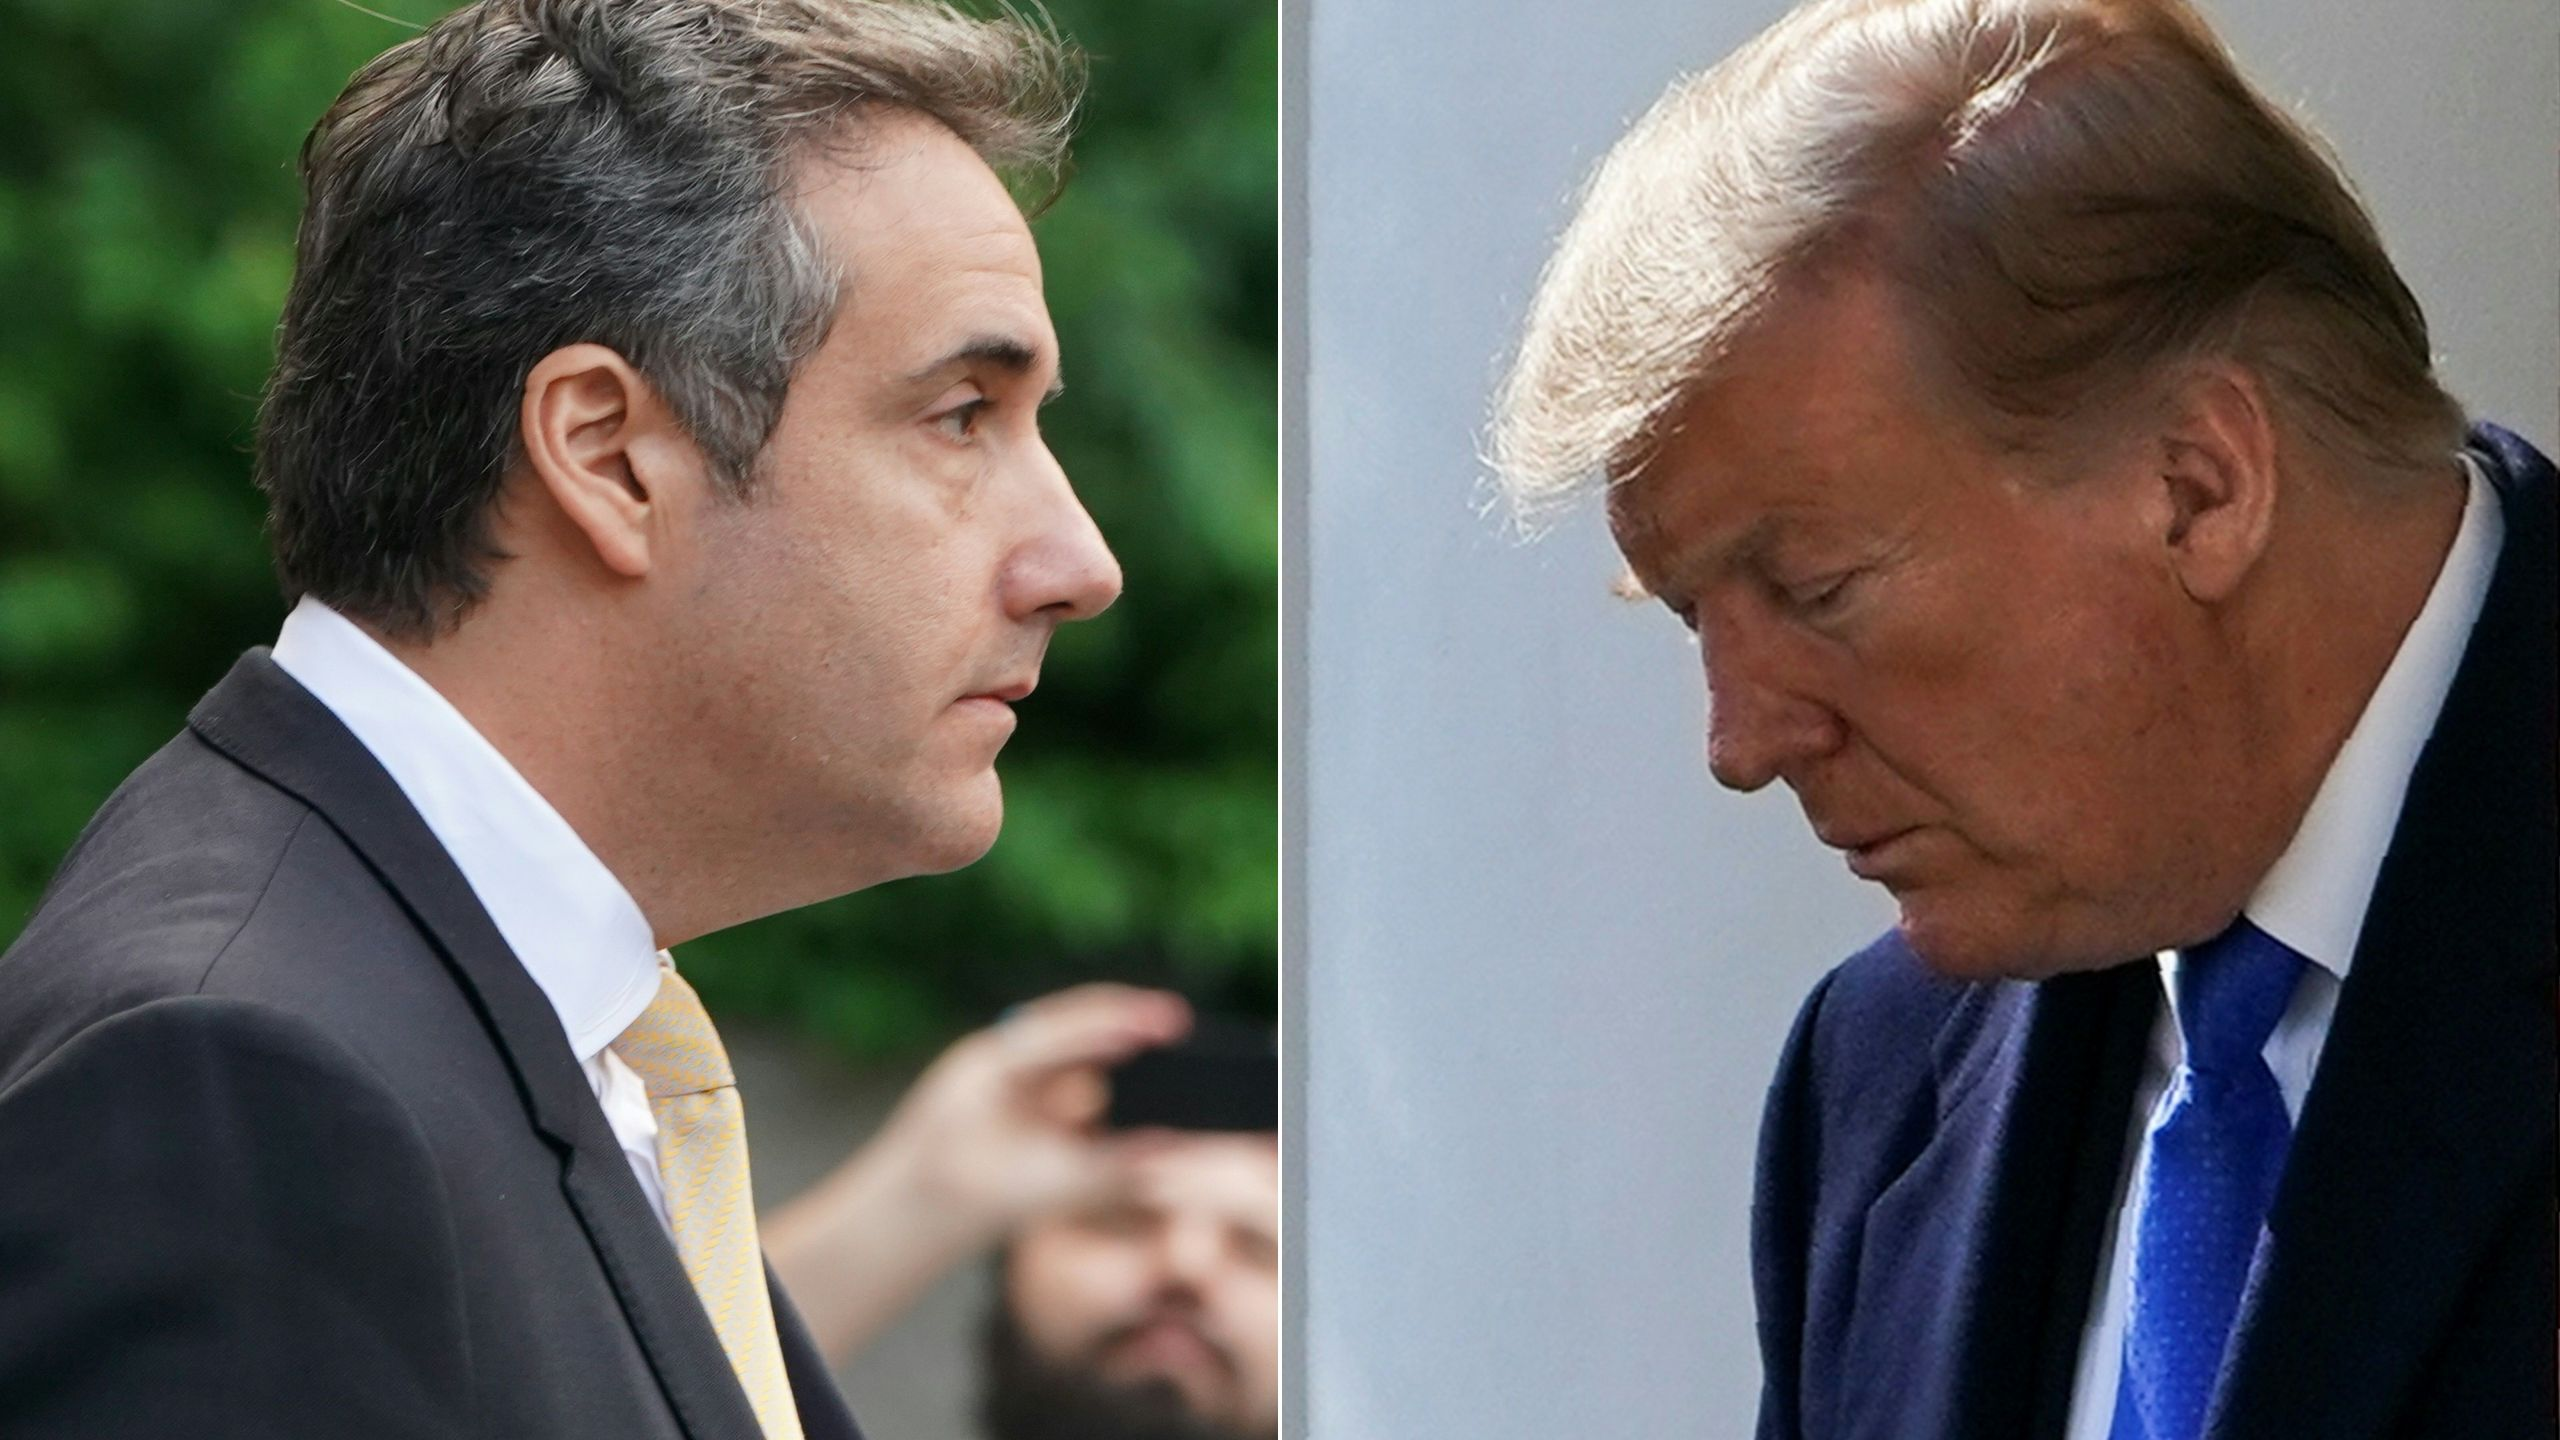 This combination of pictures created on Feb. 26, 2019, shows Michael Cohen, former personal lawyer for U.S. President Donald Trump, leaving federal court on Aug. 21, 2018, in New York, and U.S. President Donald Trump arriving to deliver remarks in the Rose Garden at the White House in Washington, D.C. on Feb. 15, 2019. (Credit: DON EMMERT, BRENDAN SMIALOWSKI/AFP/Getty Images)